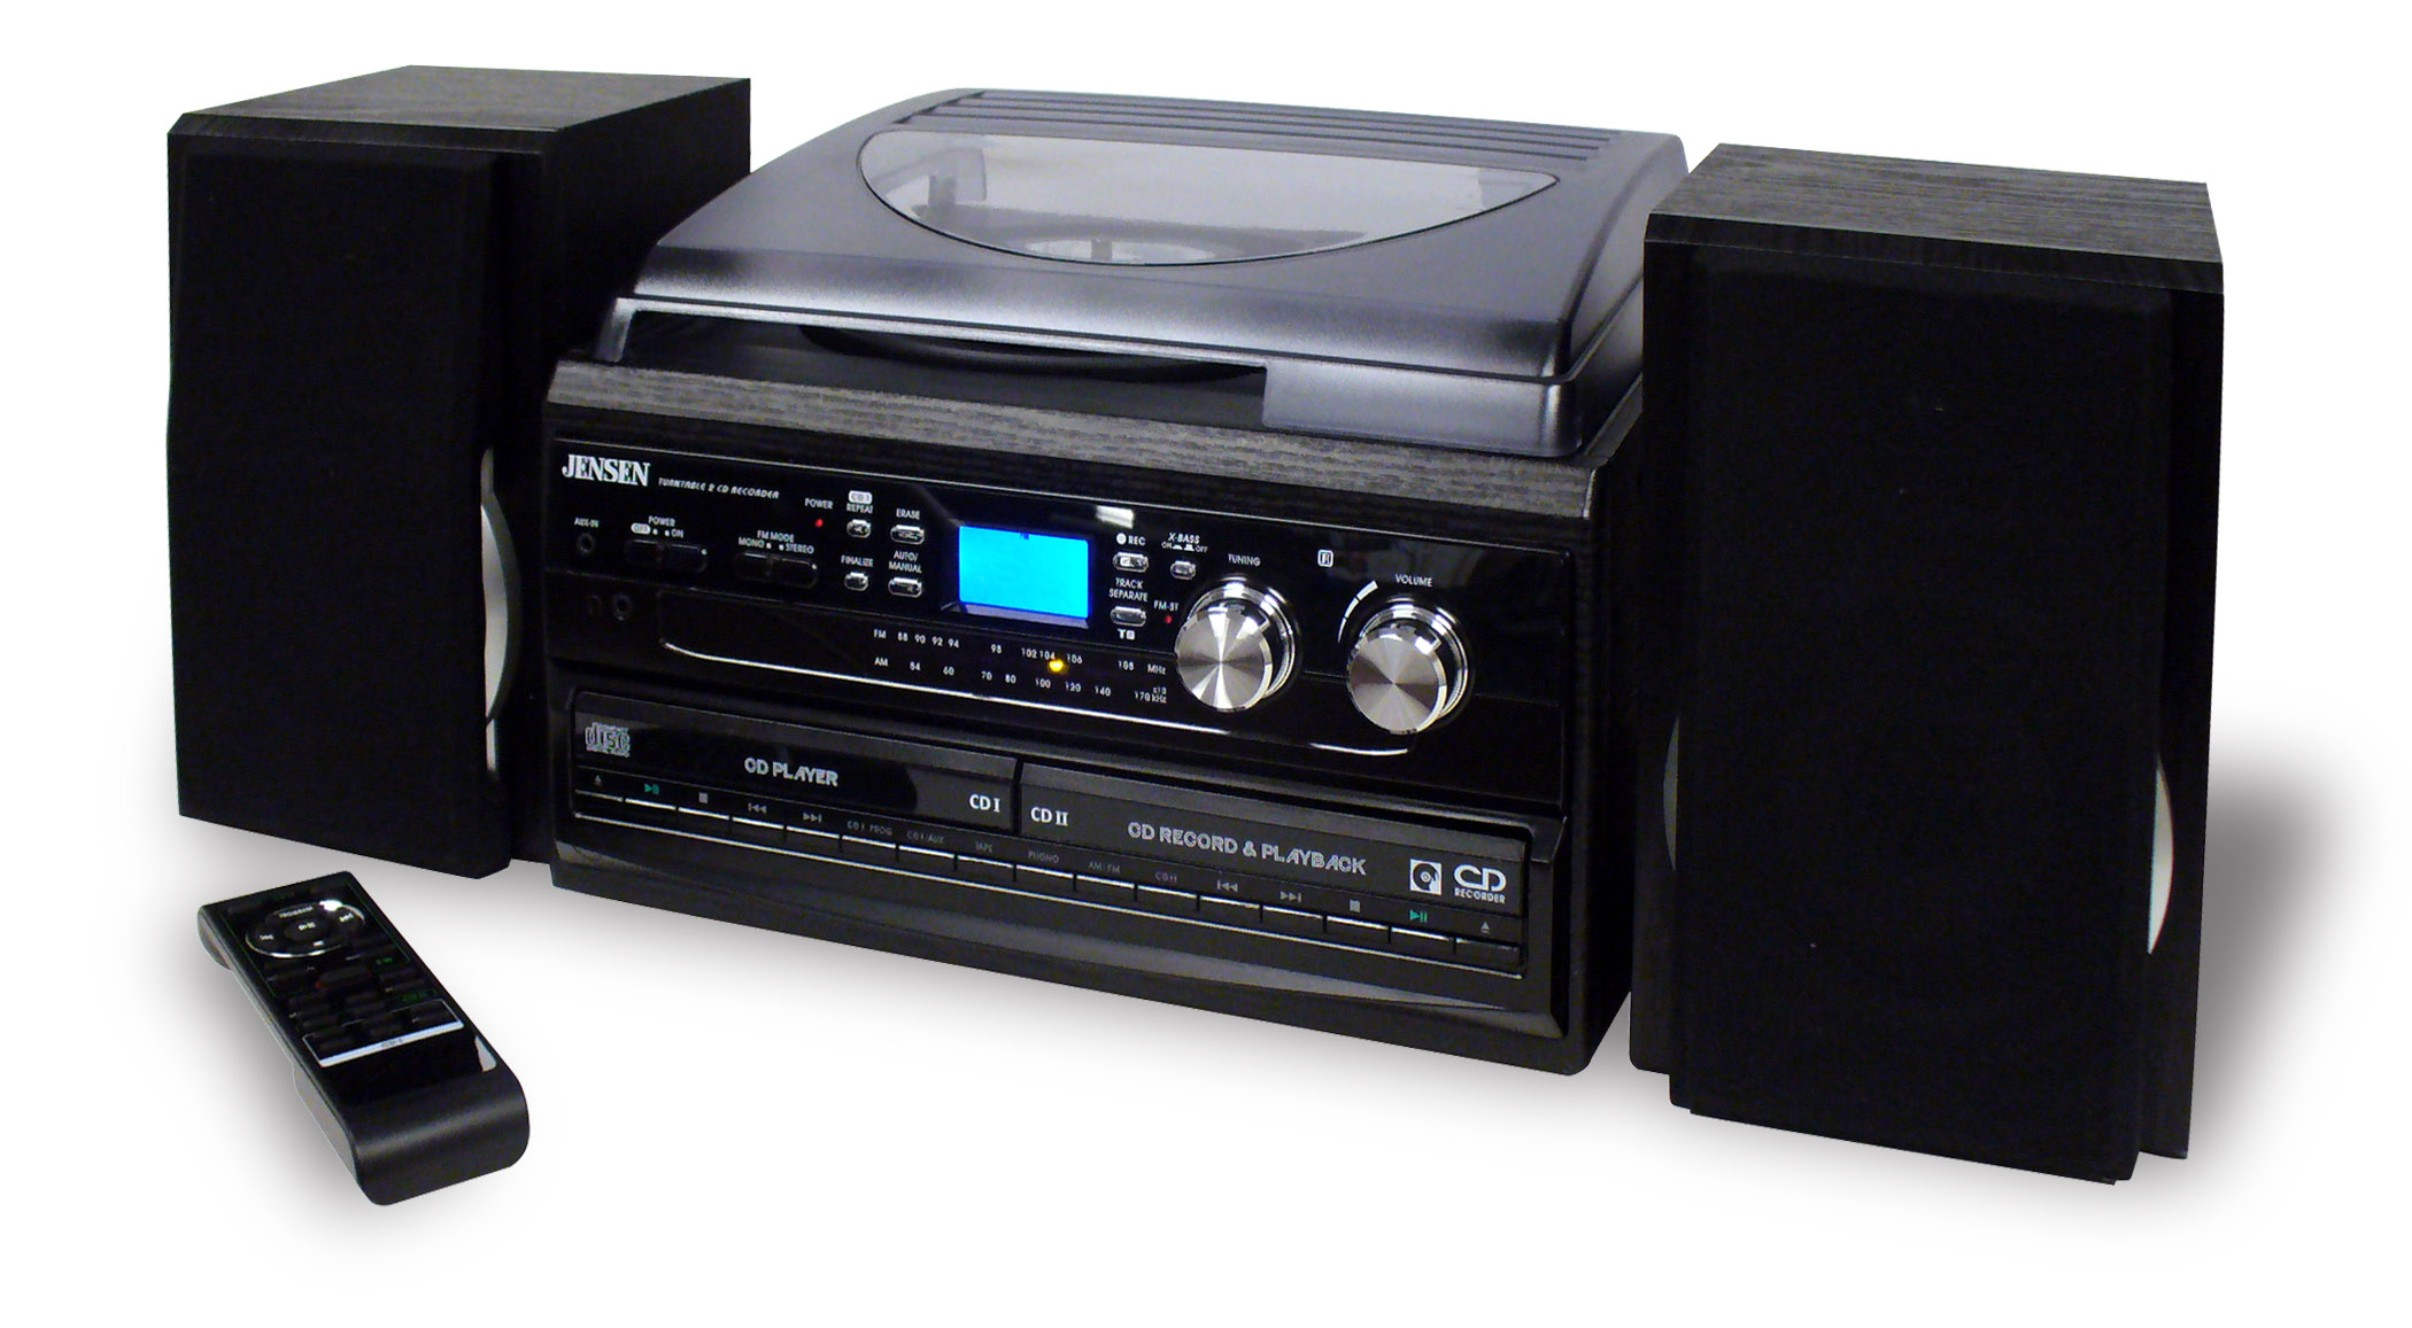 JENSEN JTA980CP BLACK STEREO TURNTABLE 3 SPEED MUSIC SYSTEM